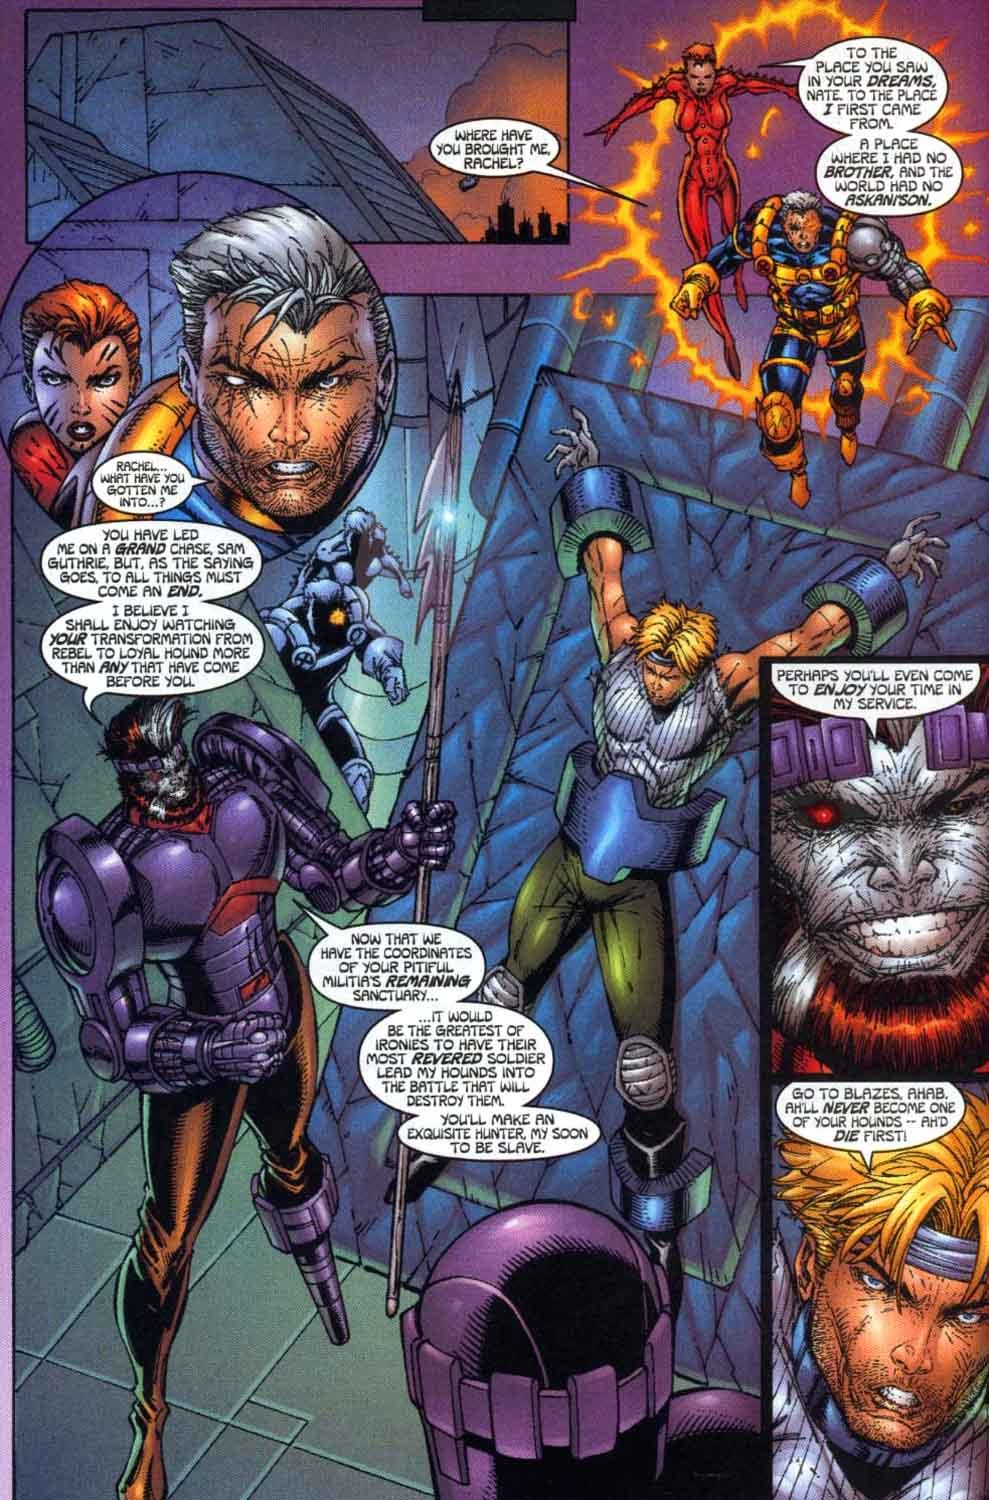 Pulls Cable through time and space to the Days of Future past timeline so that he can see how the alternate version of X-Force died and steel his resolve for the coming fight.